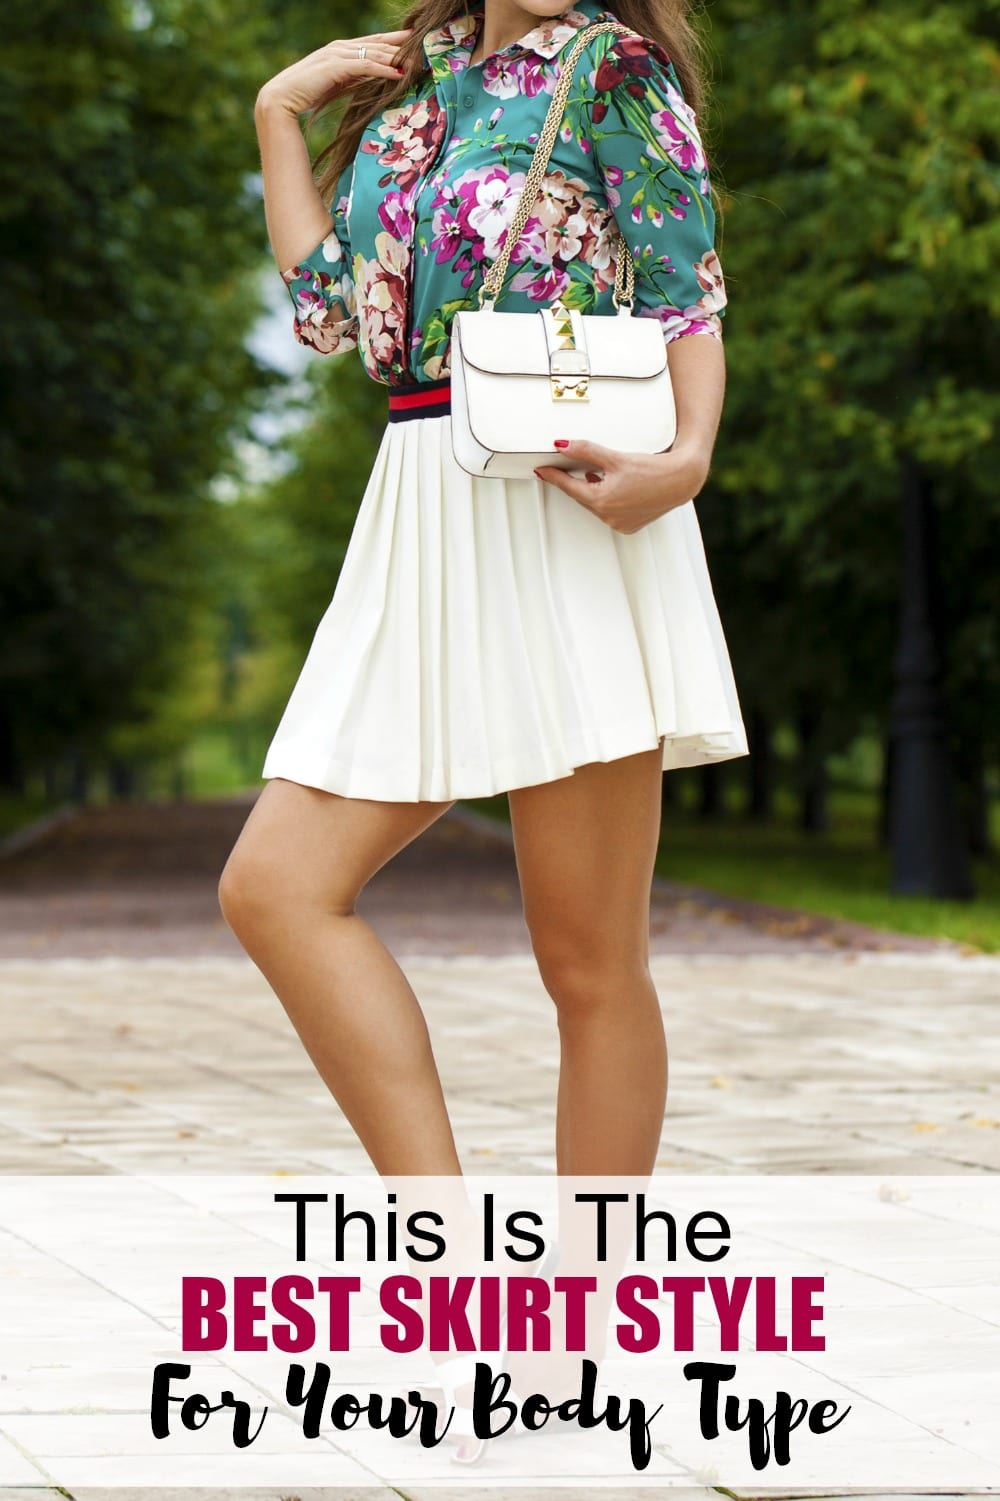 This Is The Best Skirt for Your Body Type